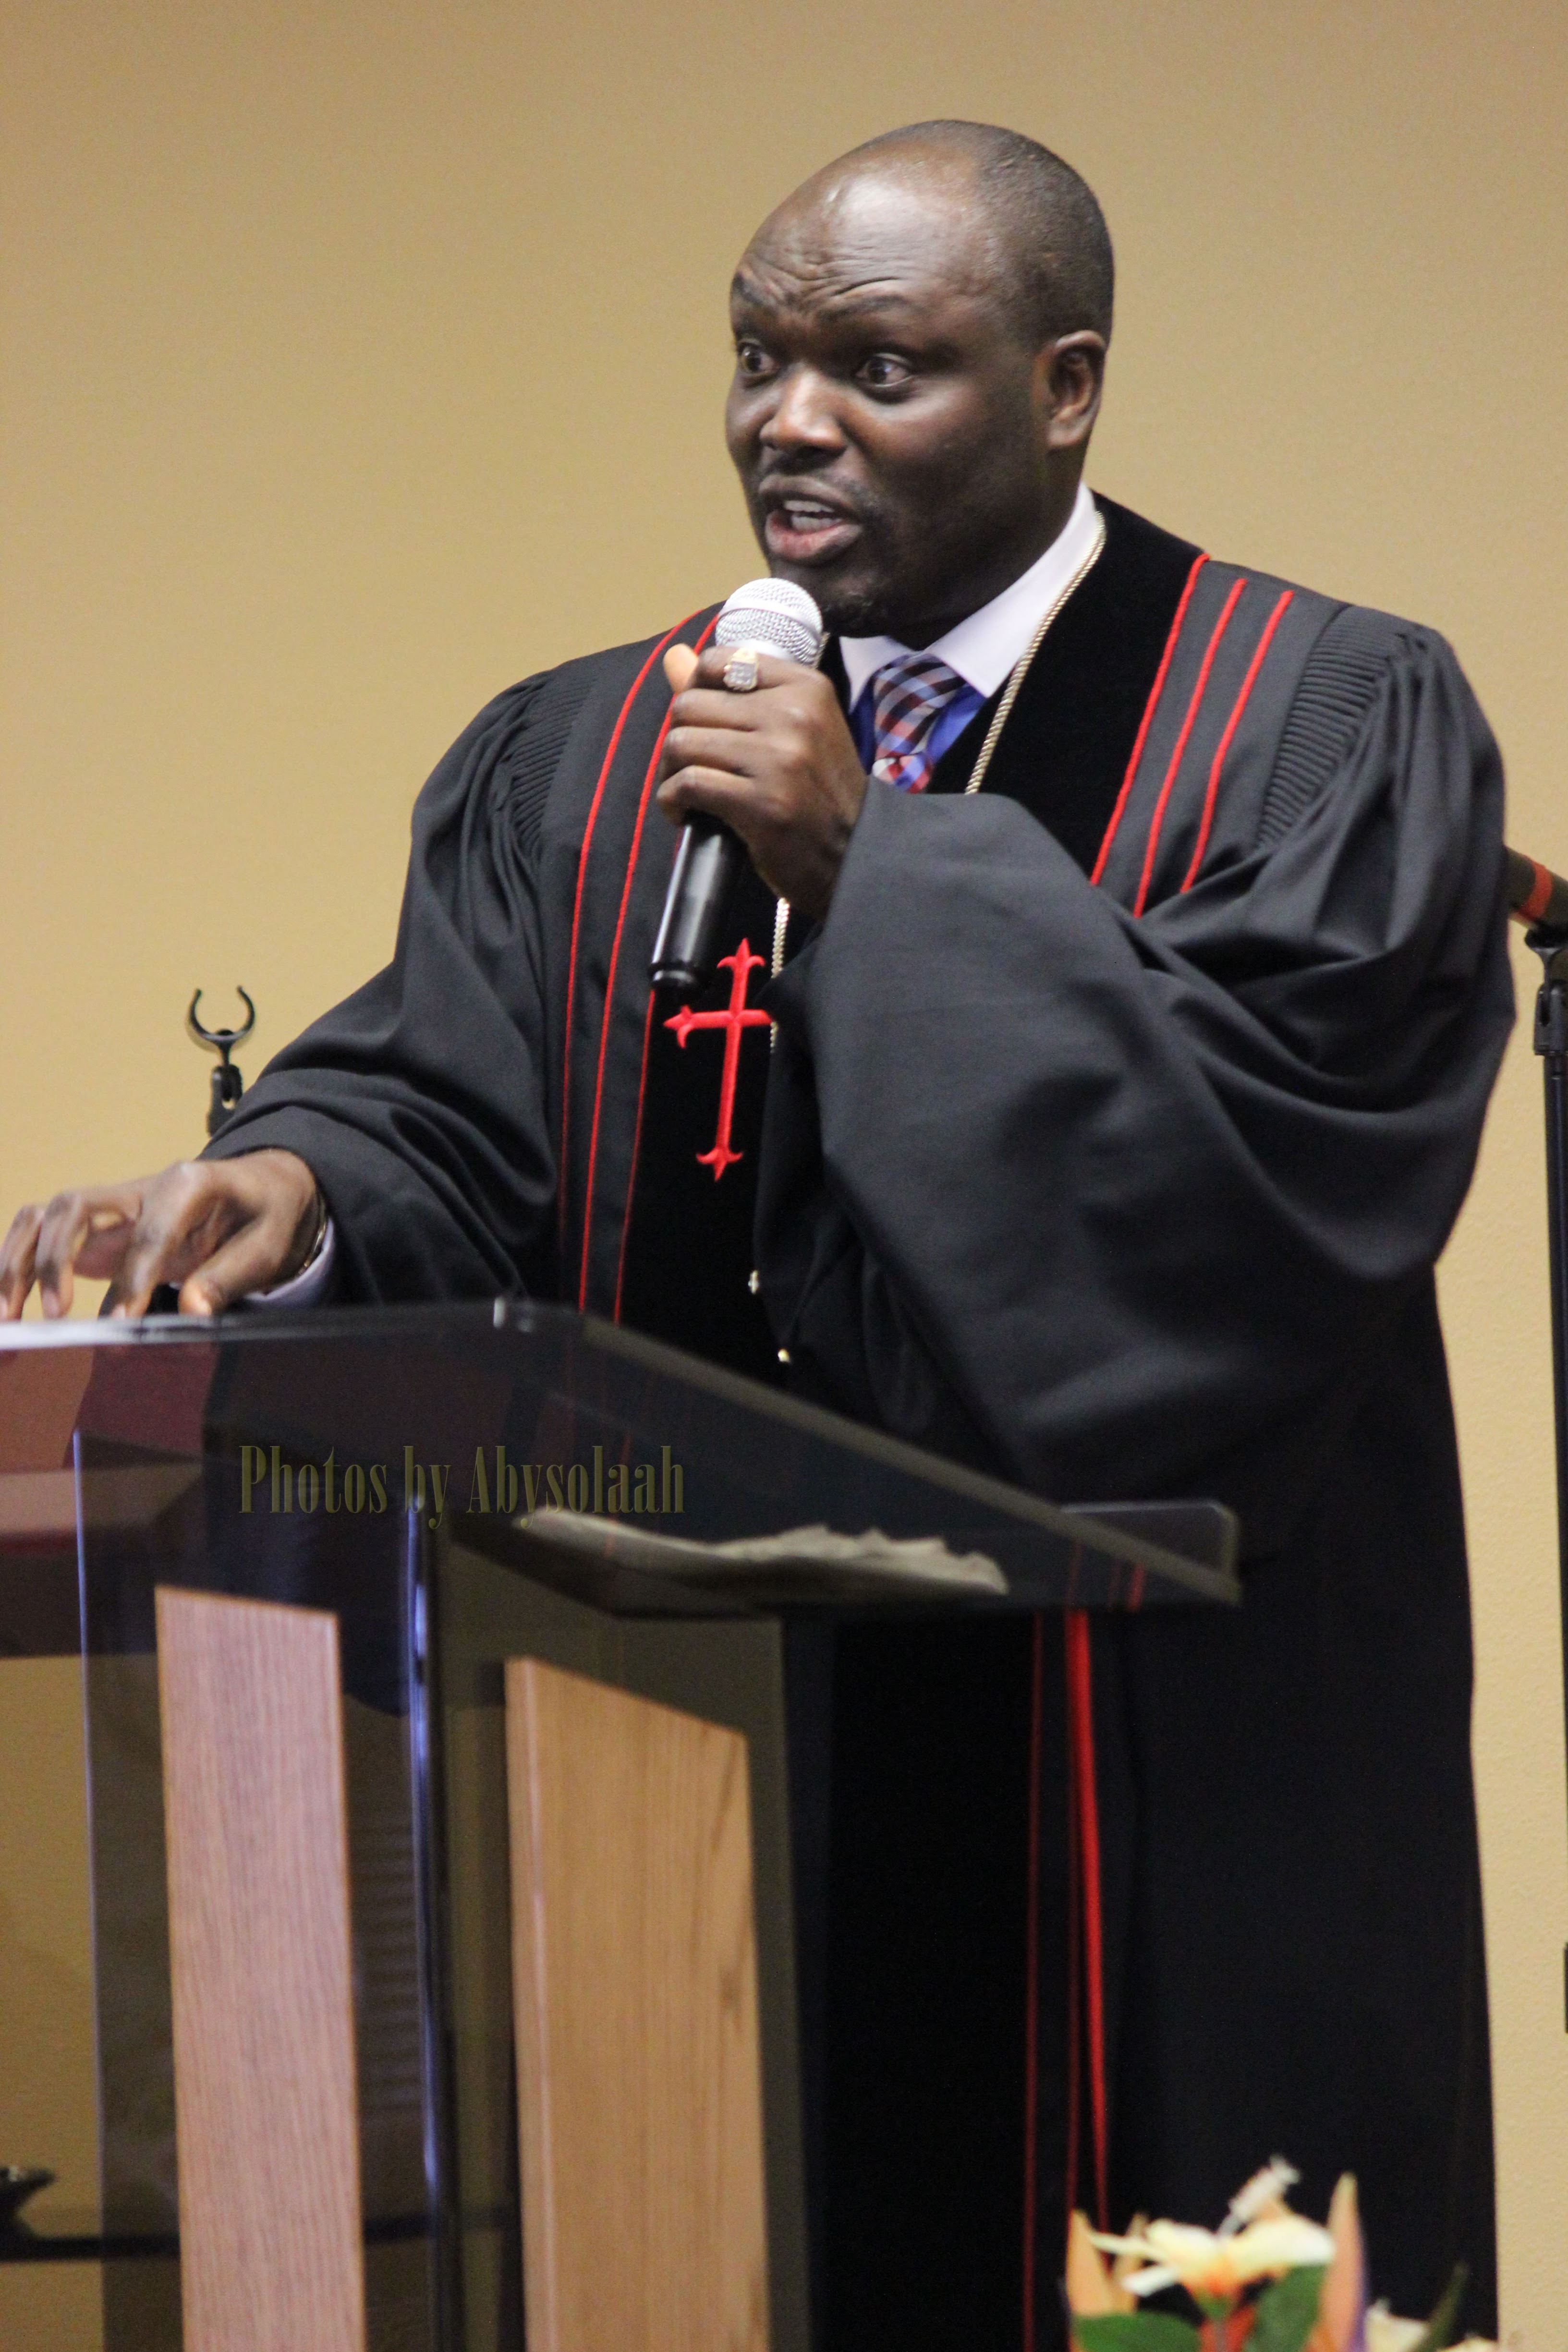 Bishop Henry ADEKOGBE, President/Founder